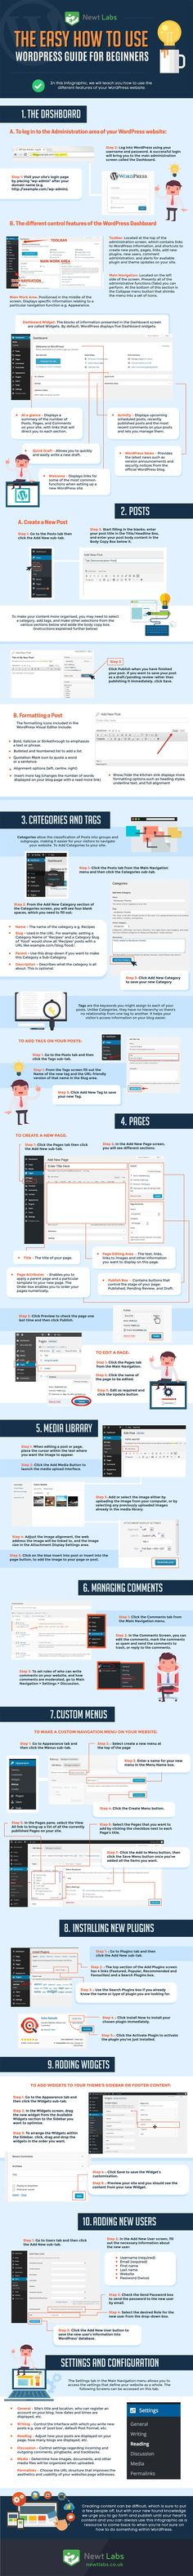 WordPress for Beginners: 10 Steps to Successfully Managing Your Site [Infographic]